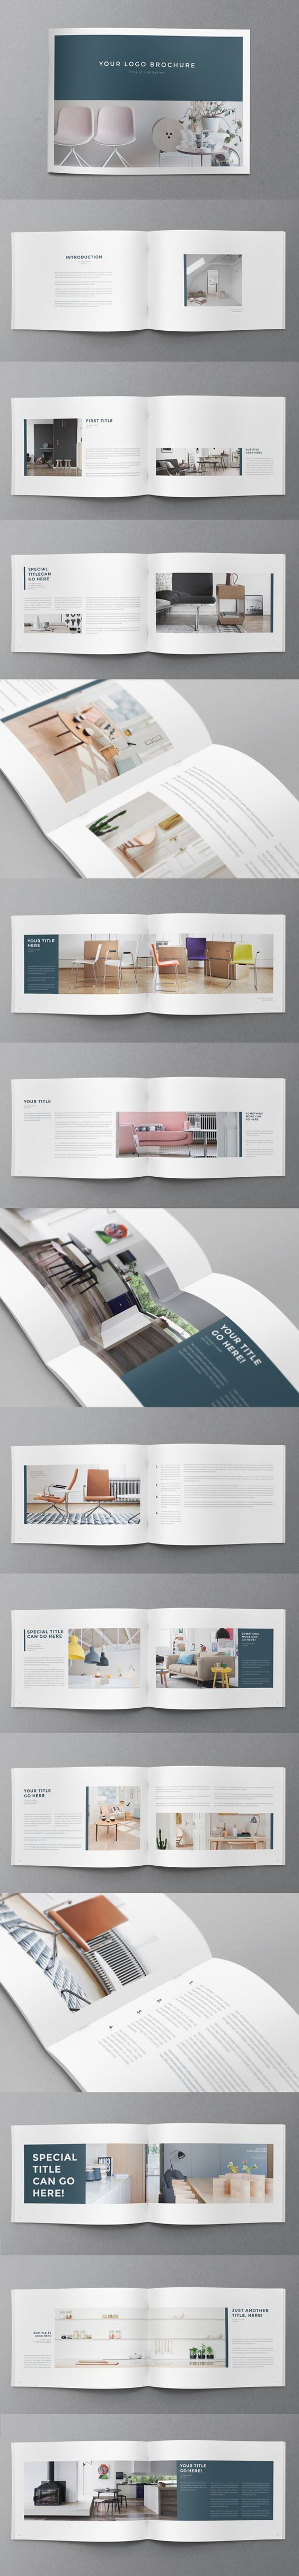 Interior Design Minimal Brochure. Download here: http://graphicriver.net/item/interior-design-minimal-brochure/11243000?ref=abradesign #brochure #design: